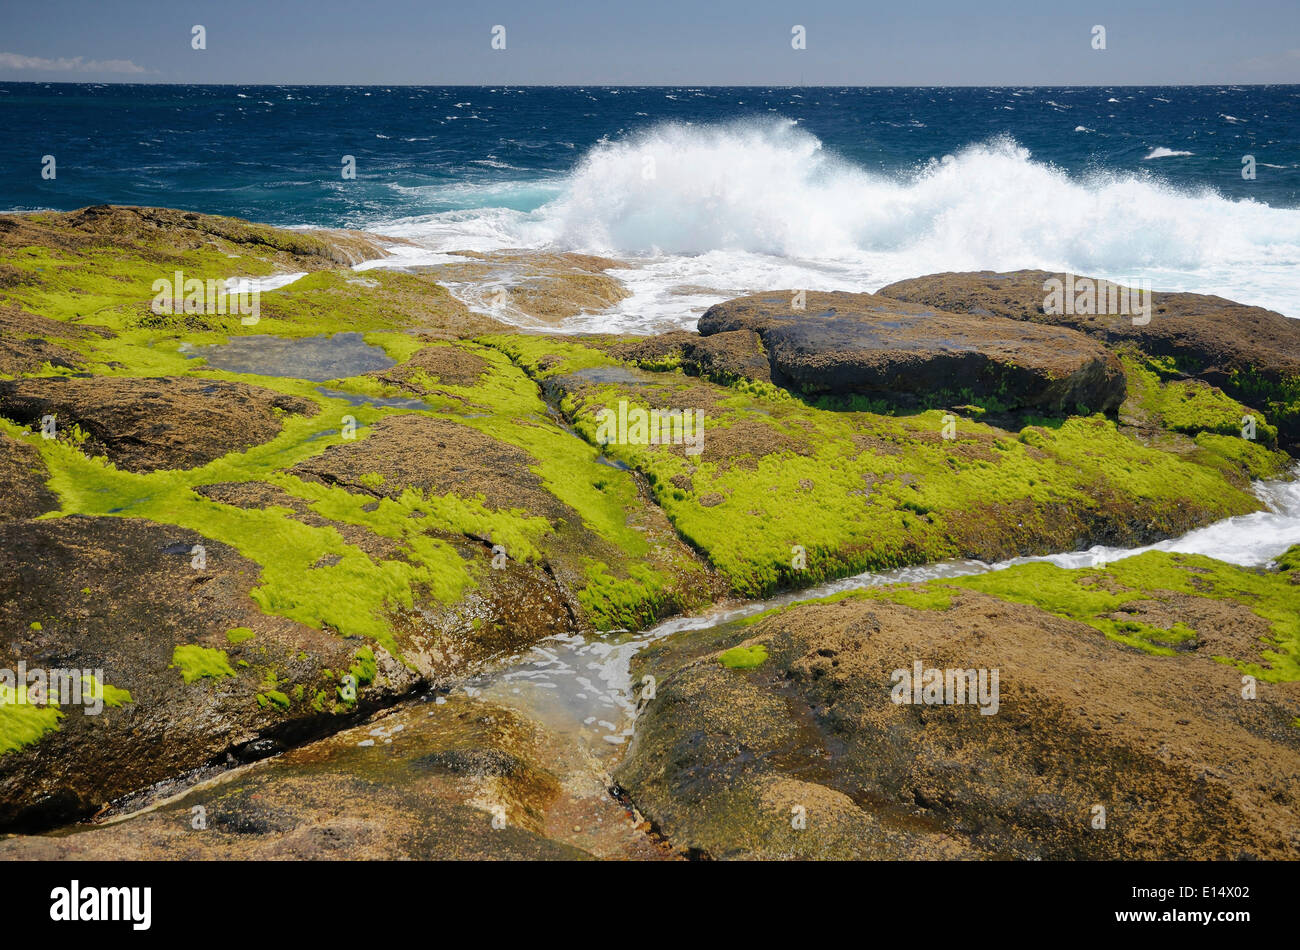 Surf on lava rocks covered in green algae, Playa Paraiso, Adeje, Tenerife, Canary Islands, Spain - Stock Image